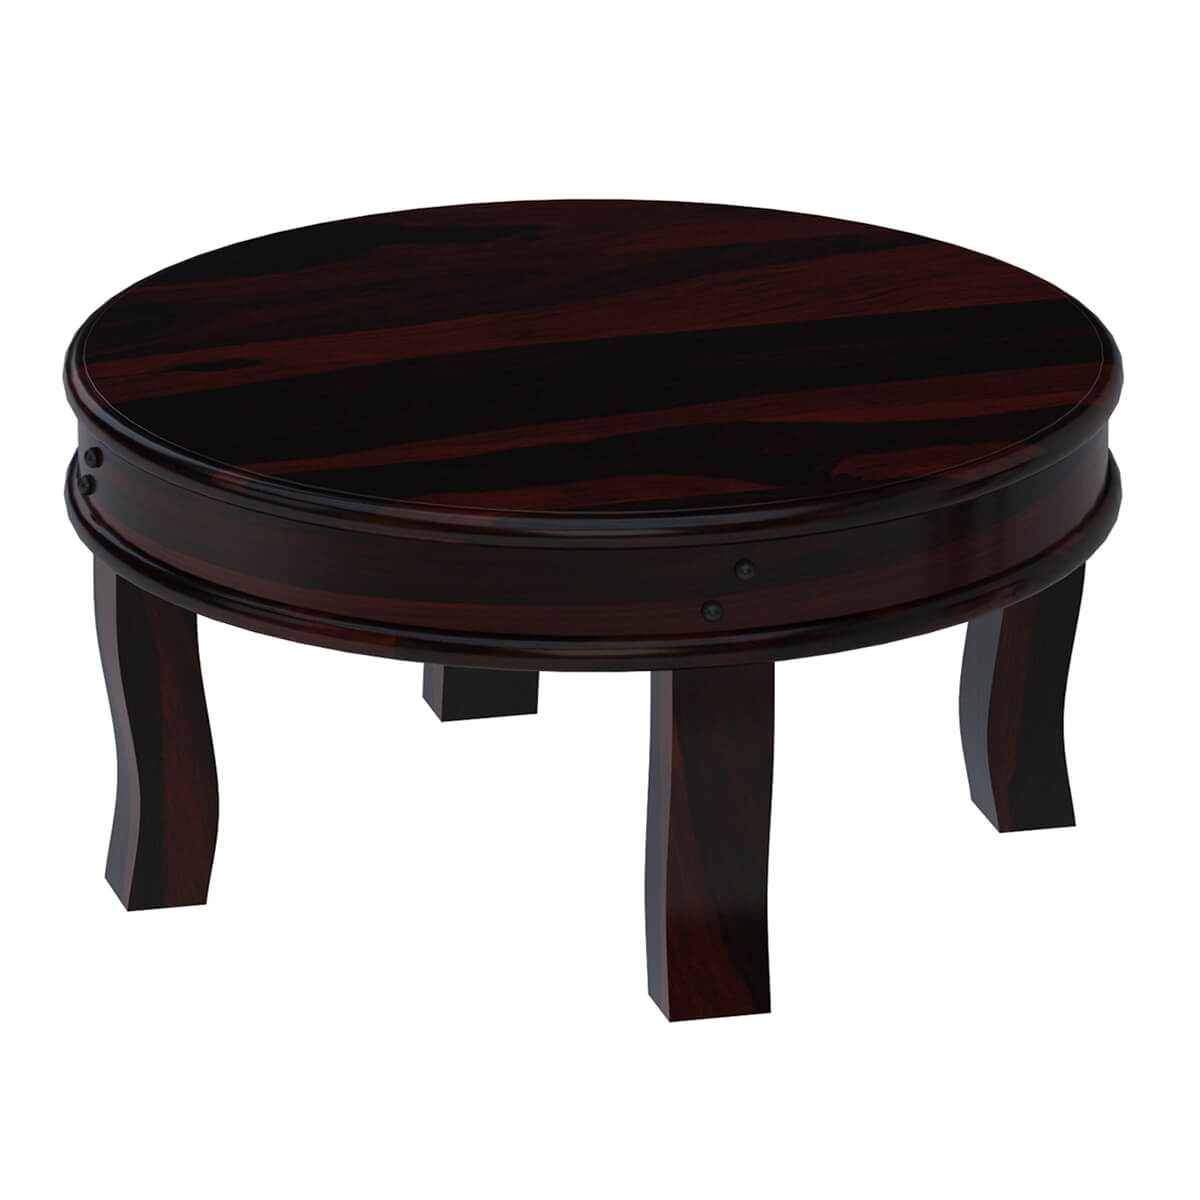 Full Moon Solid Wood 36 Quot Round Coffee Table